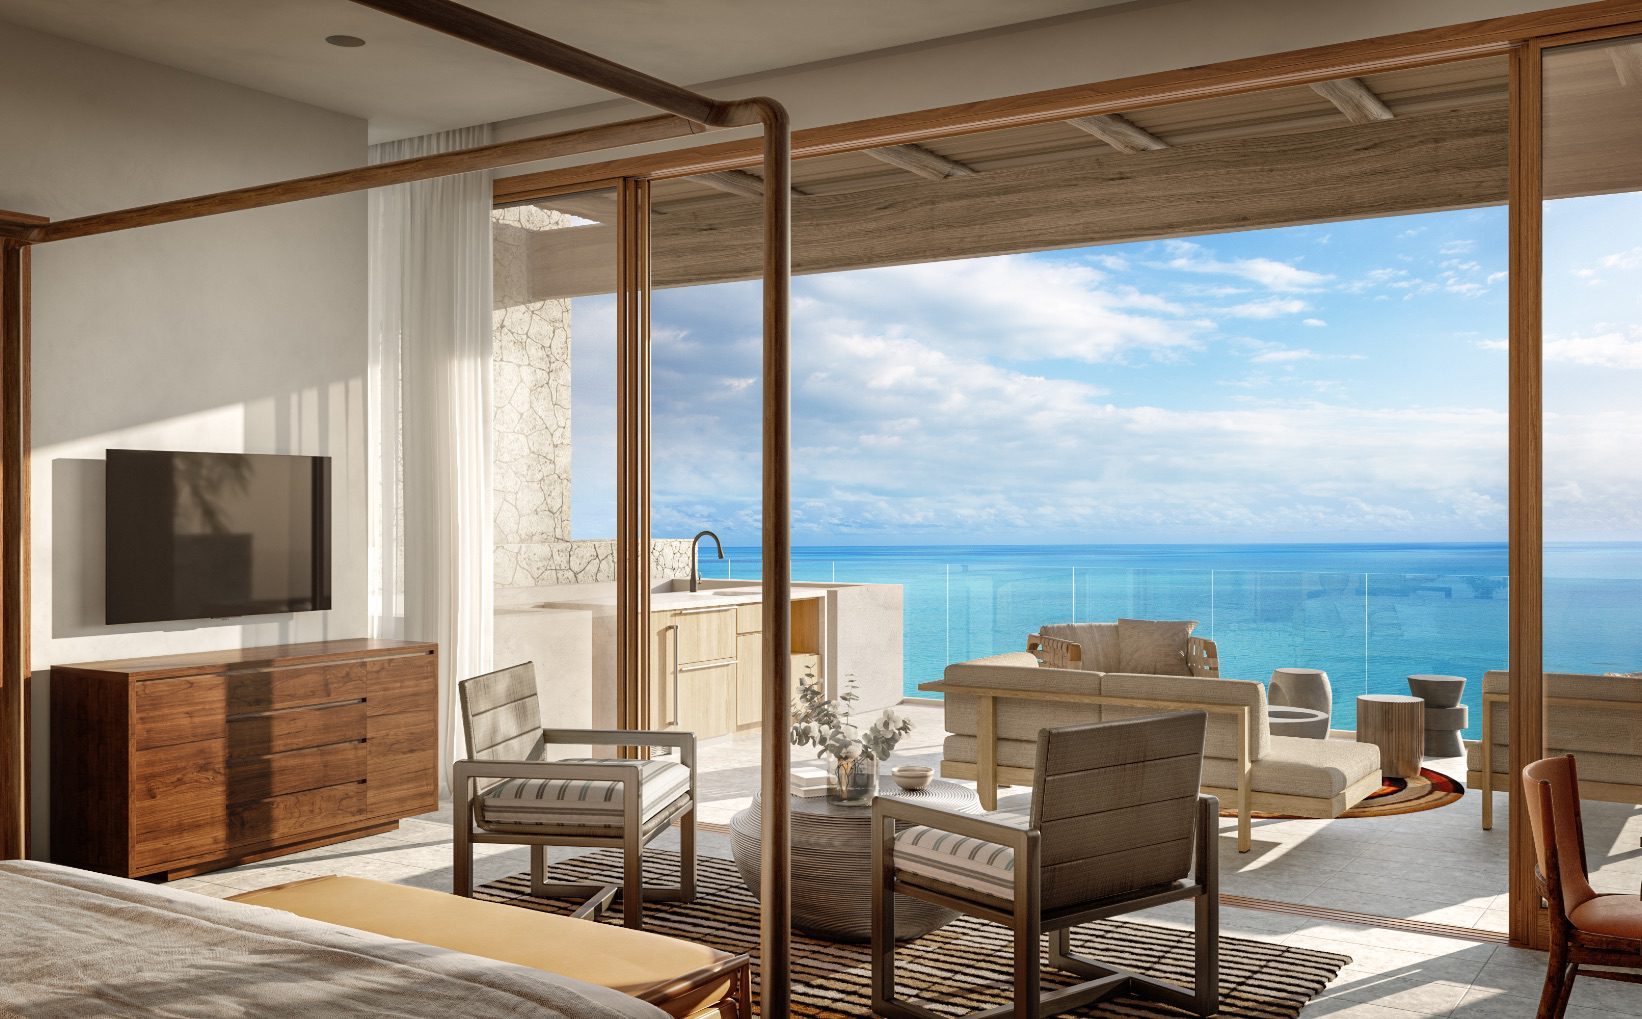 The Strand Turks and Caicos - Luxury Real Estate